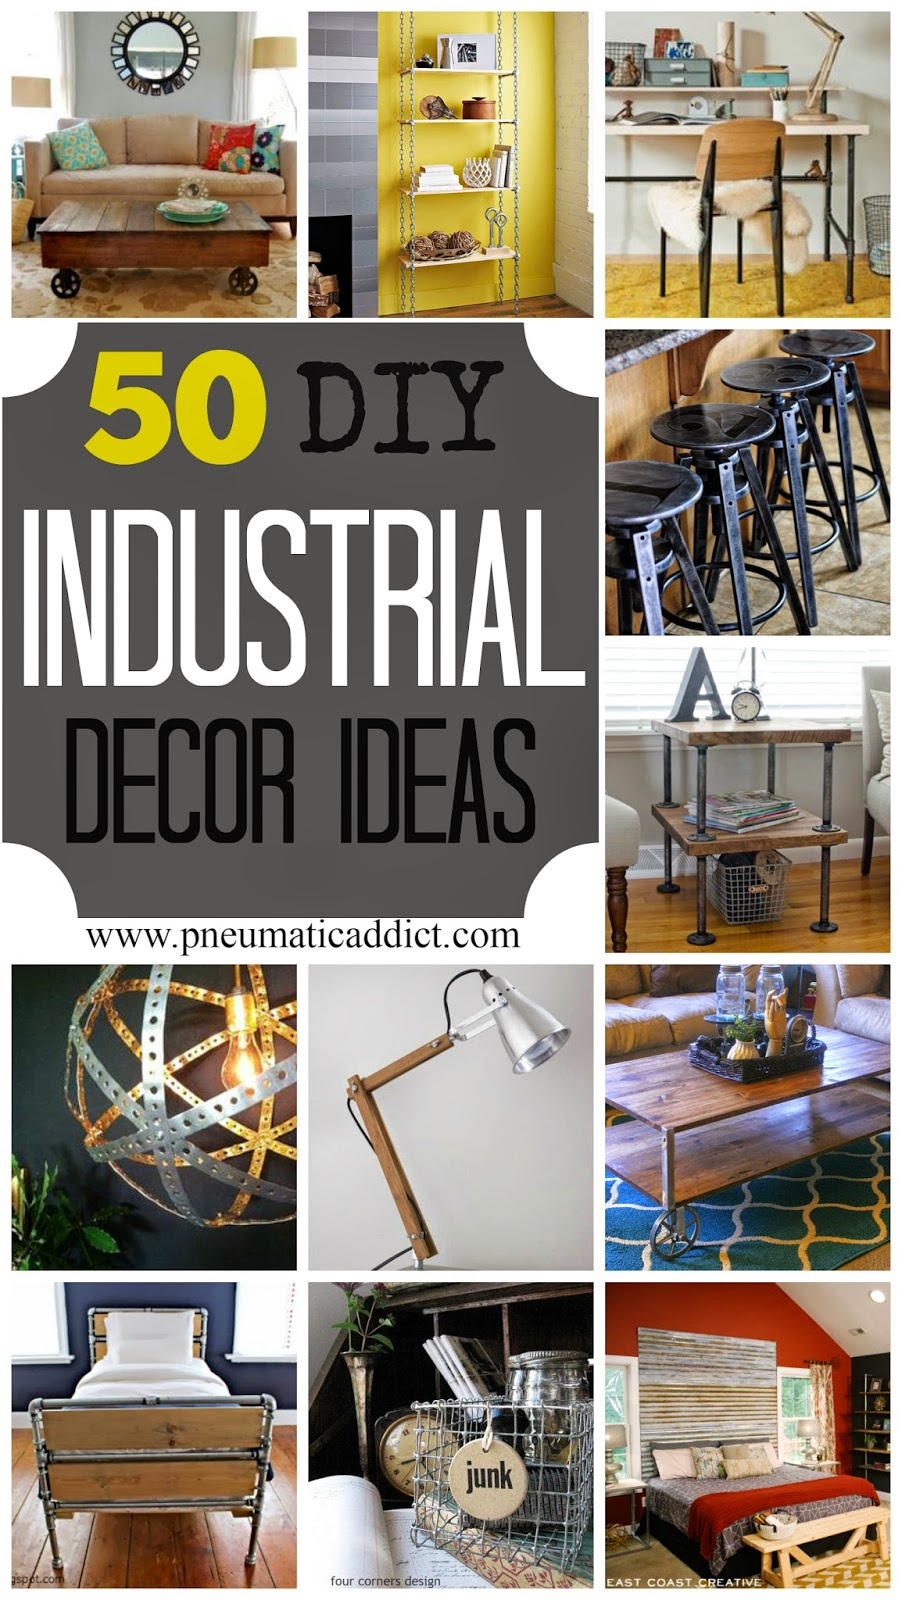 50 diy industrial decor ideas pneumatic addict. Black Bedroom Furniture Sets. Home Design Ideas